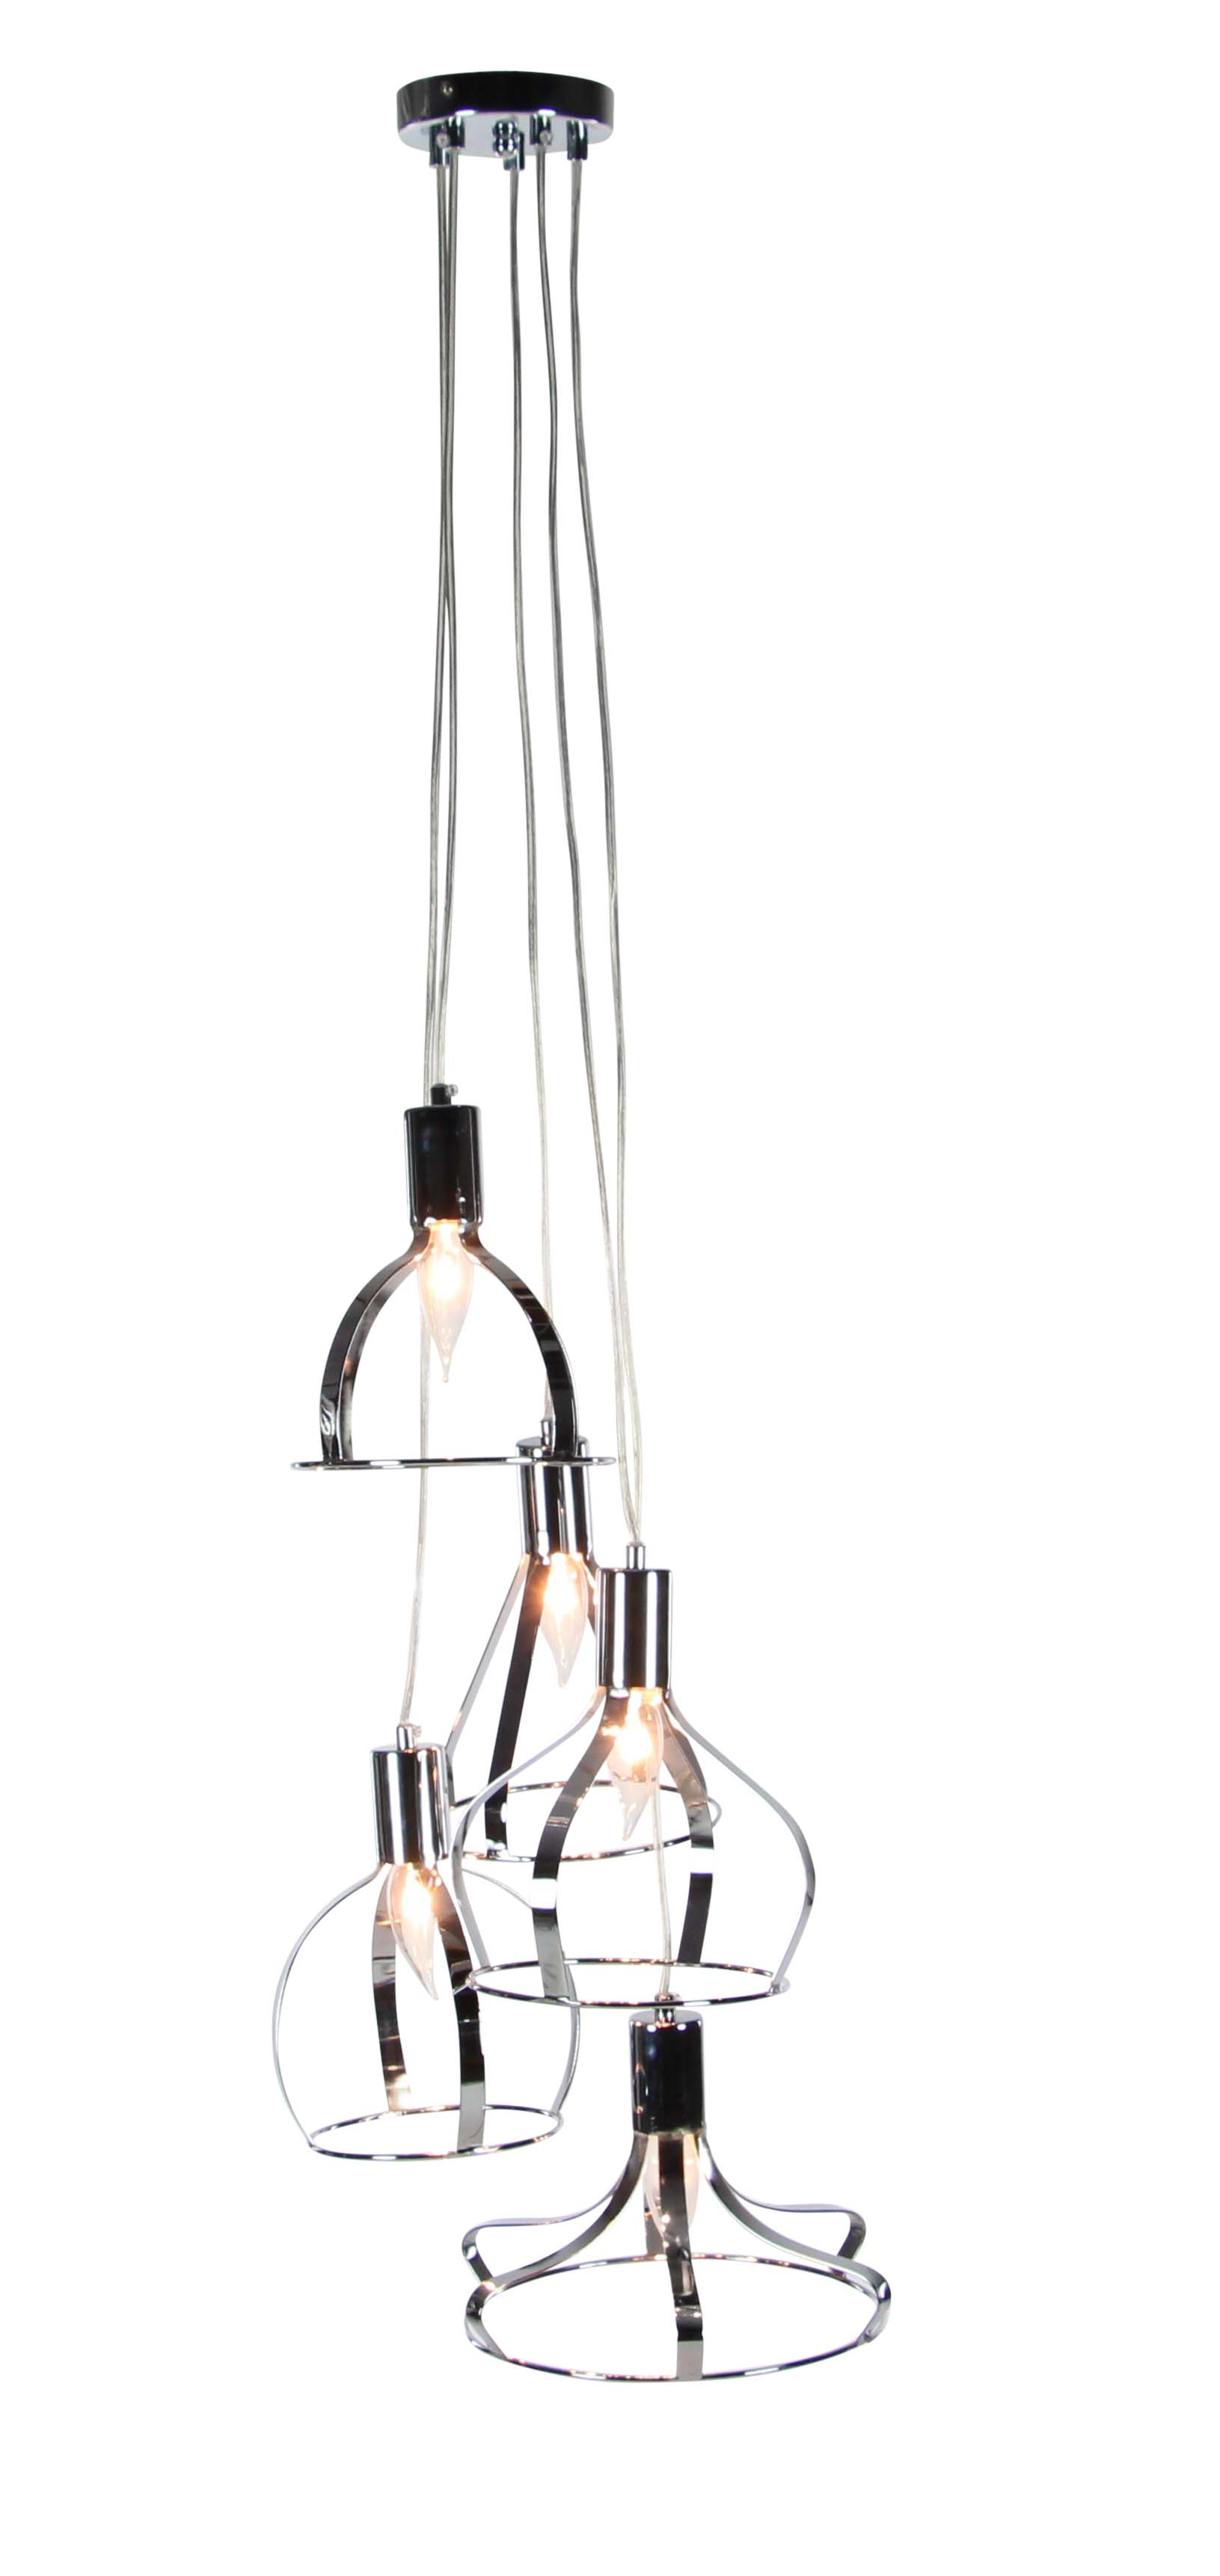 Decmode Contemporary 56 inch black iron bell-shaped five